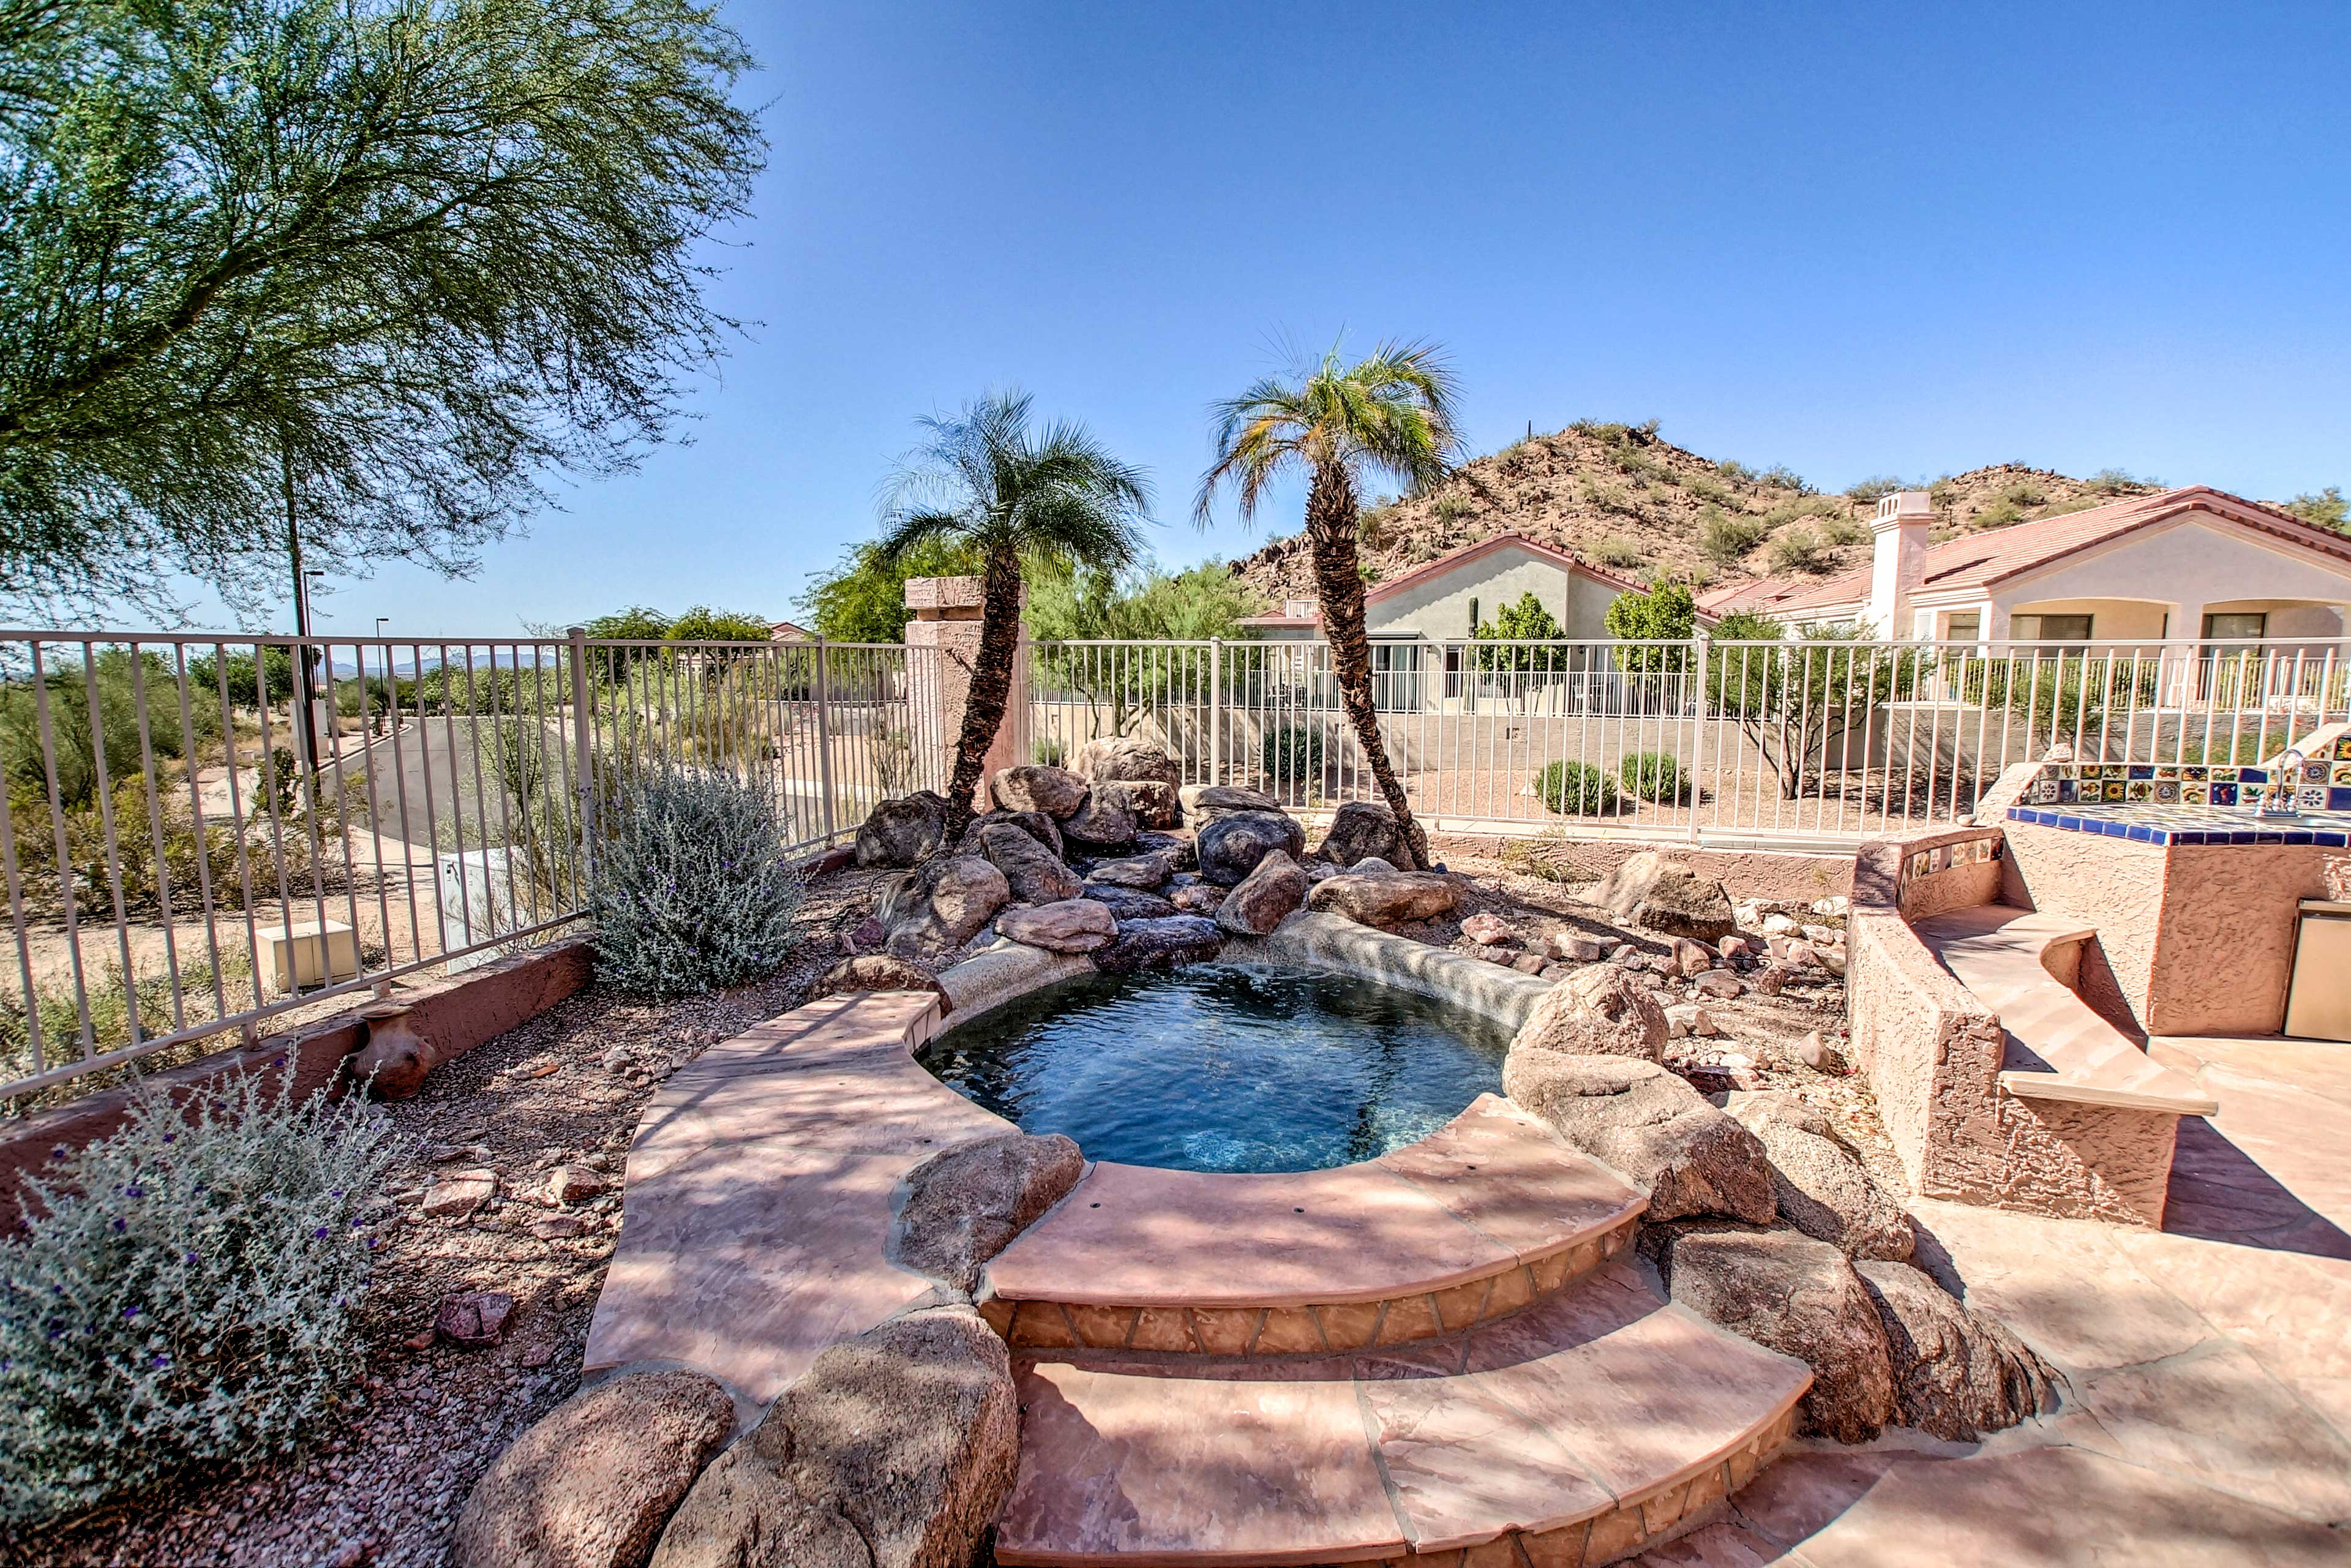 The in-ground hot tub offers a calming fountain feature.